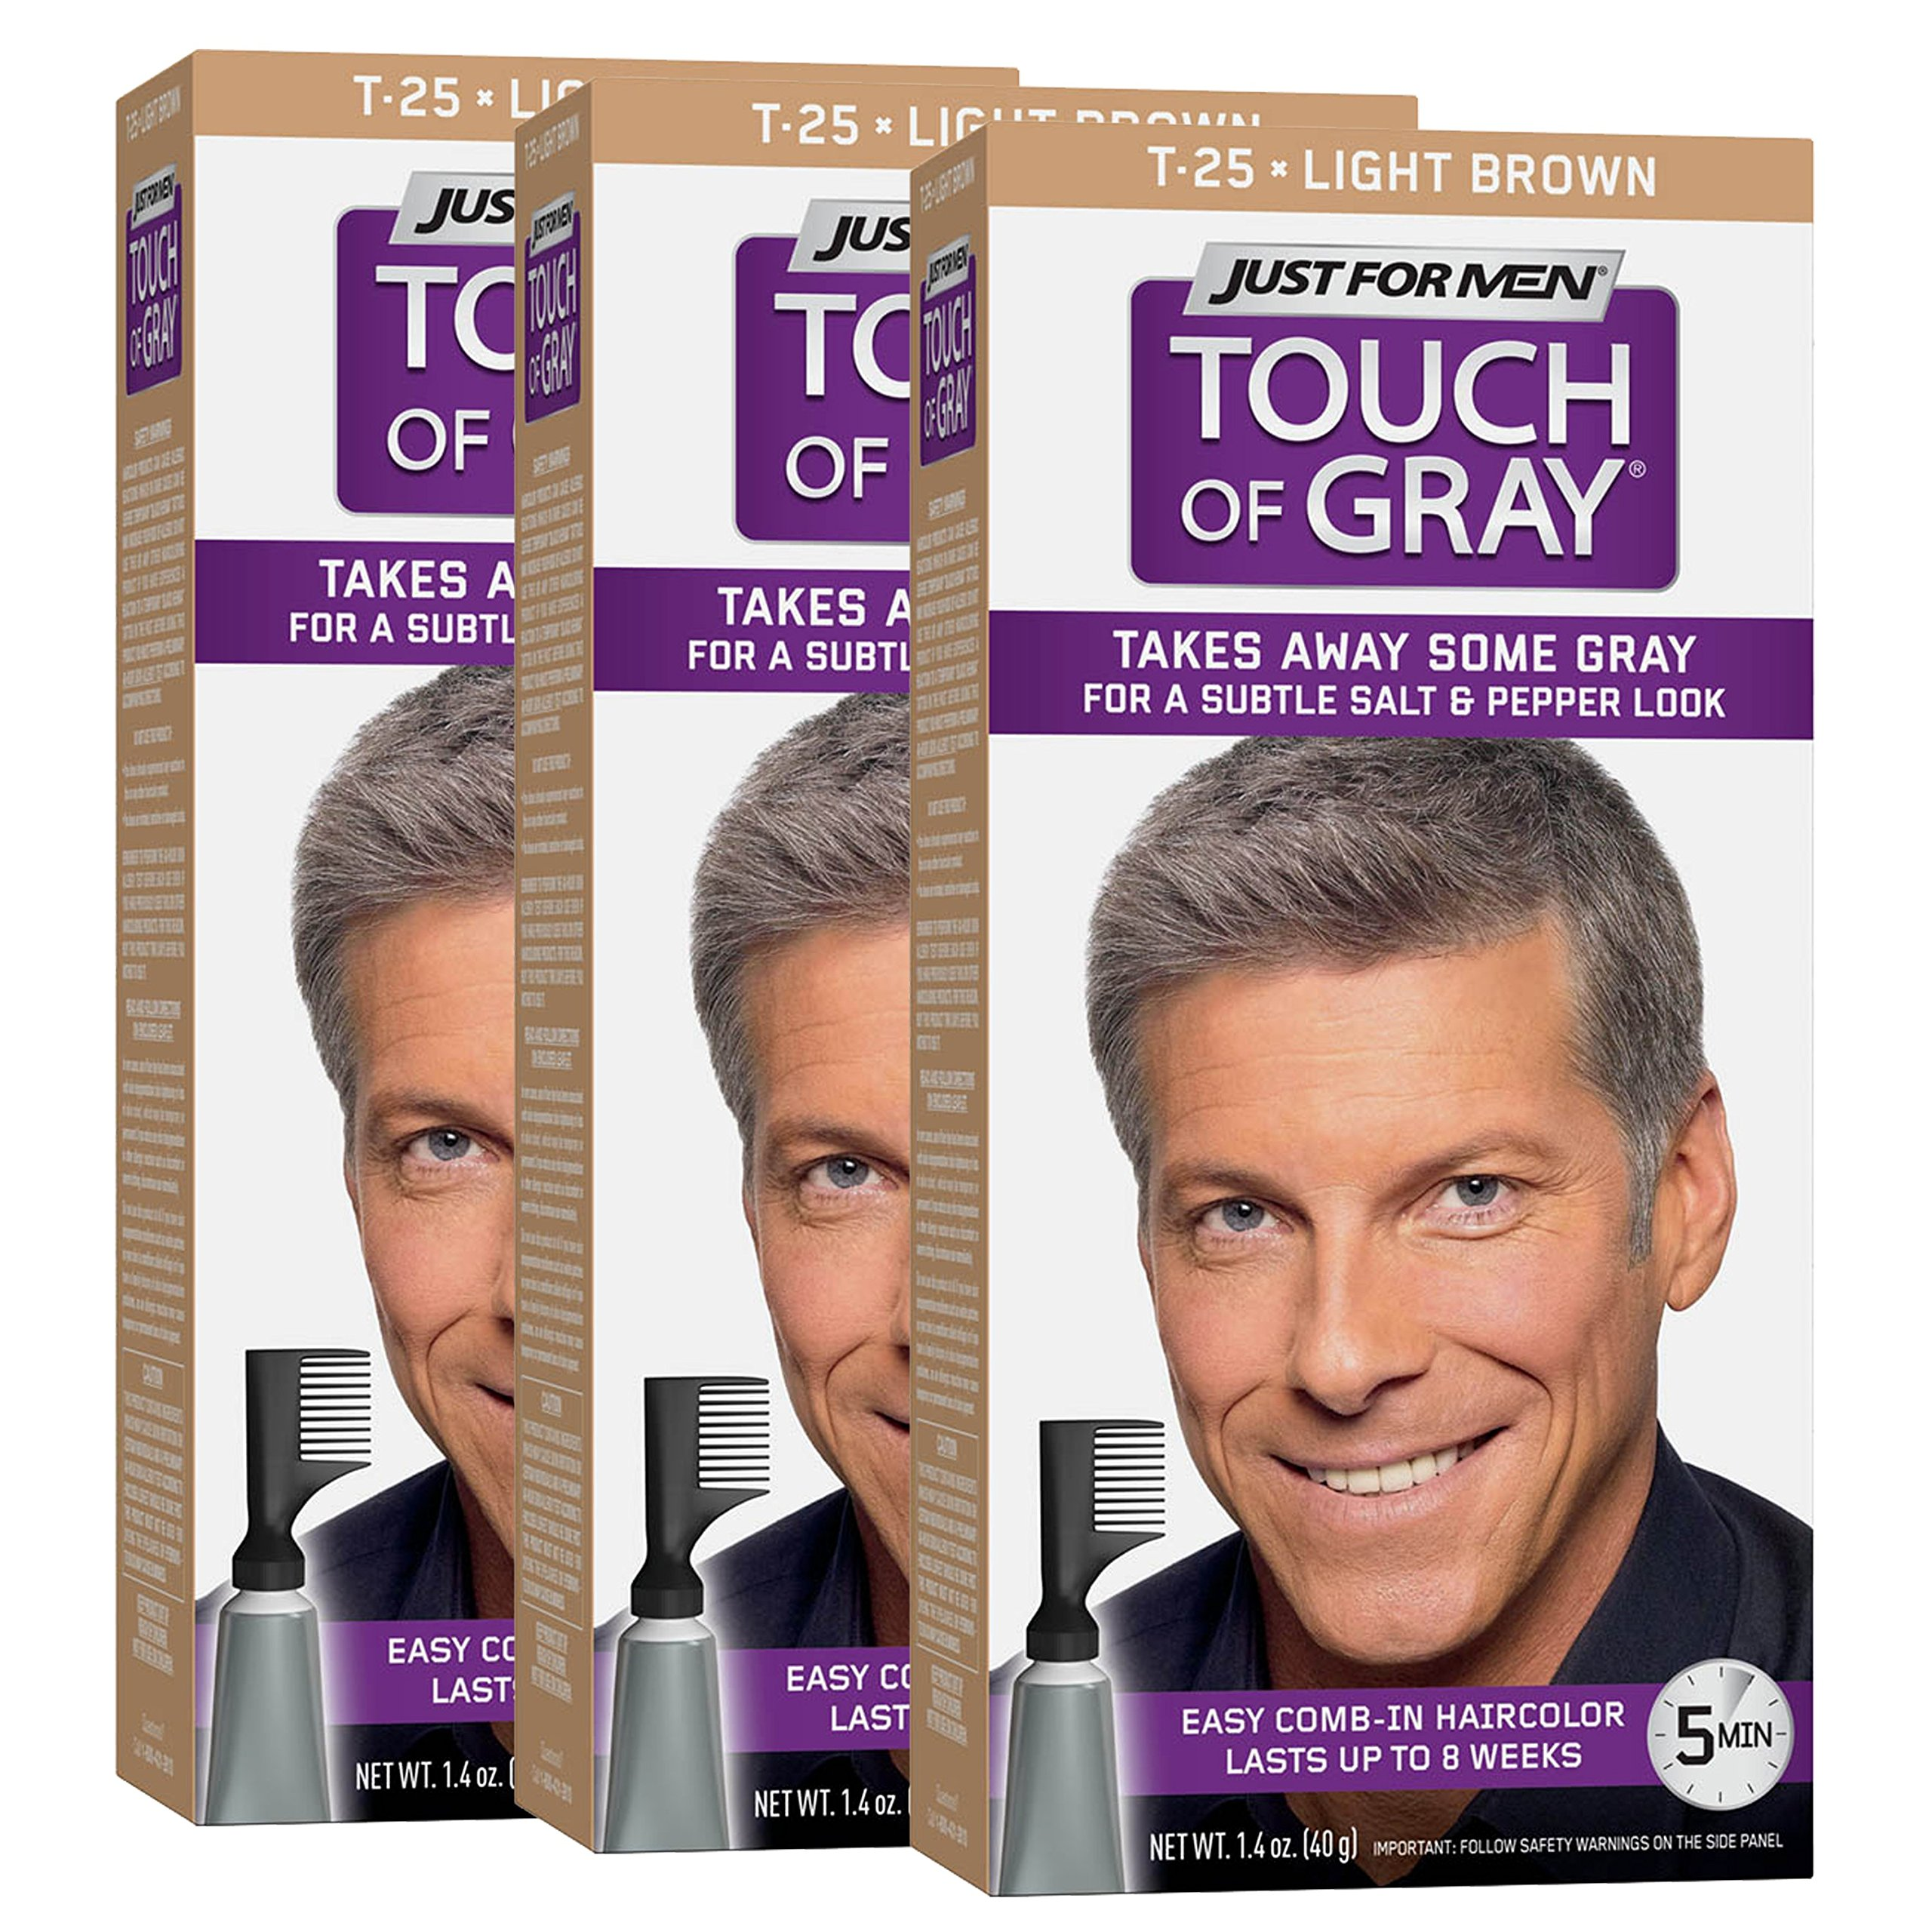 Just For Men Touch Of Gray Comb-In Men's Hair Color, Light Brown (Pack of 3) by Just for Men